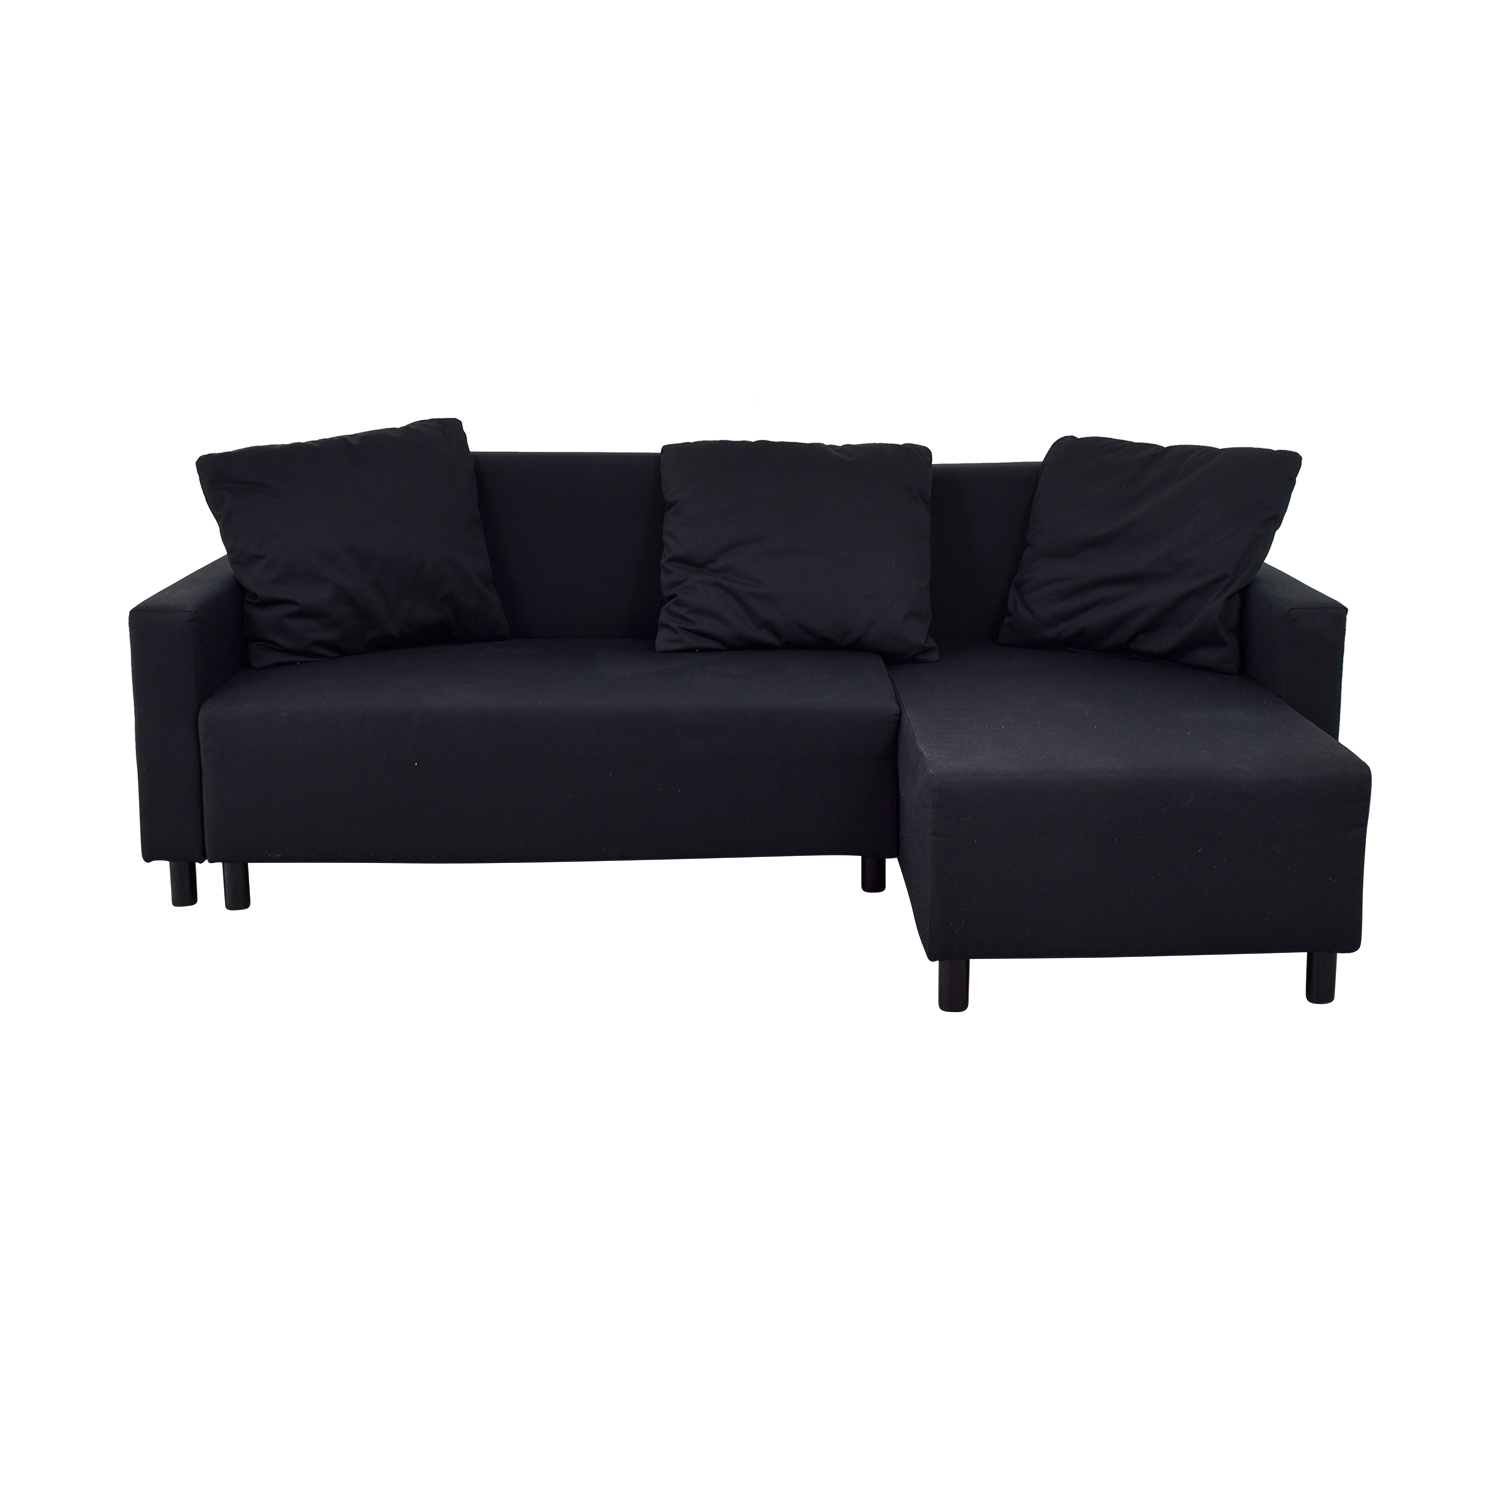 ikea sofa sleeper sectional swivel chair canada black cover for kivik with chaise